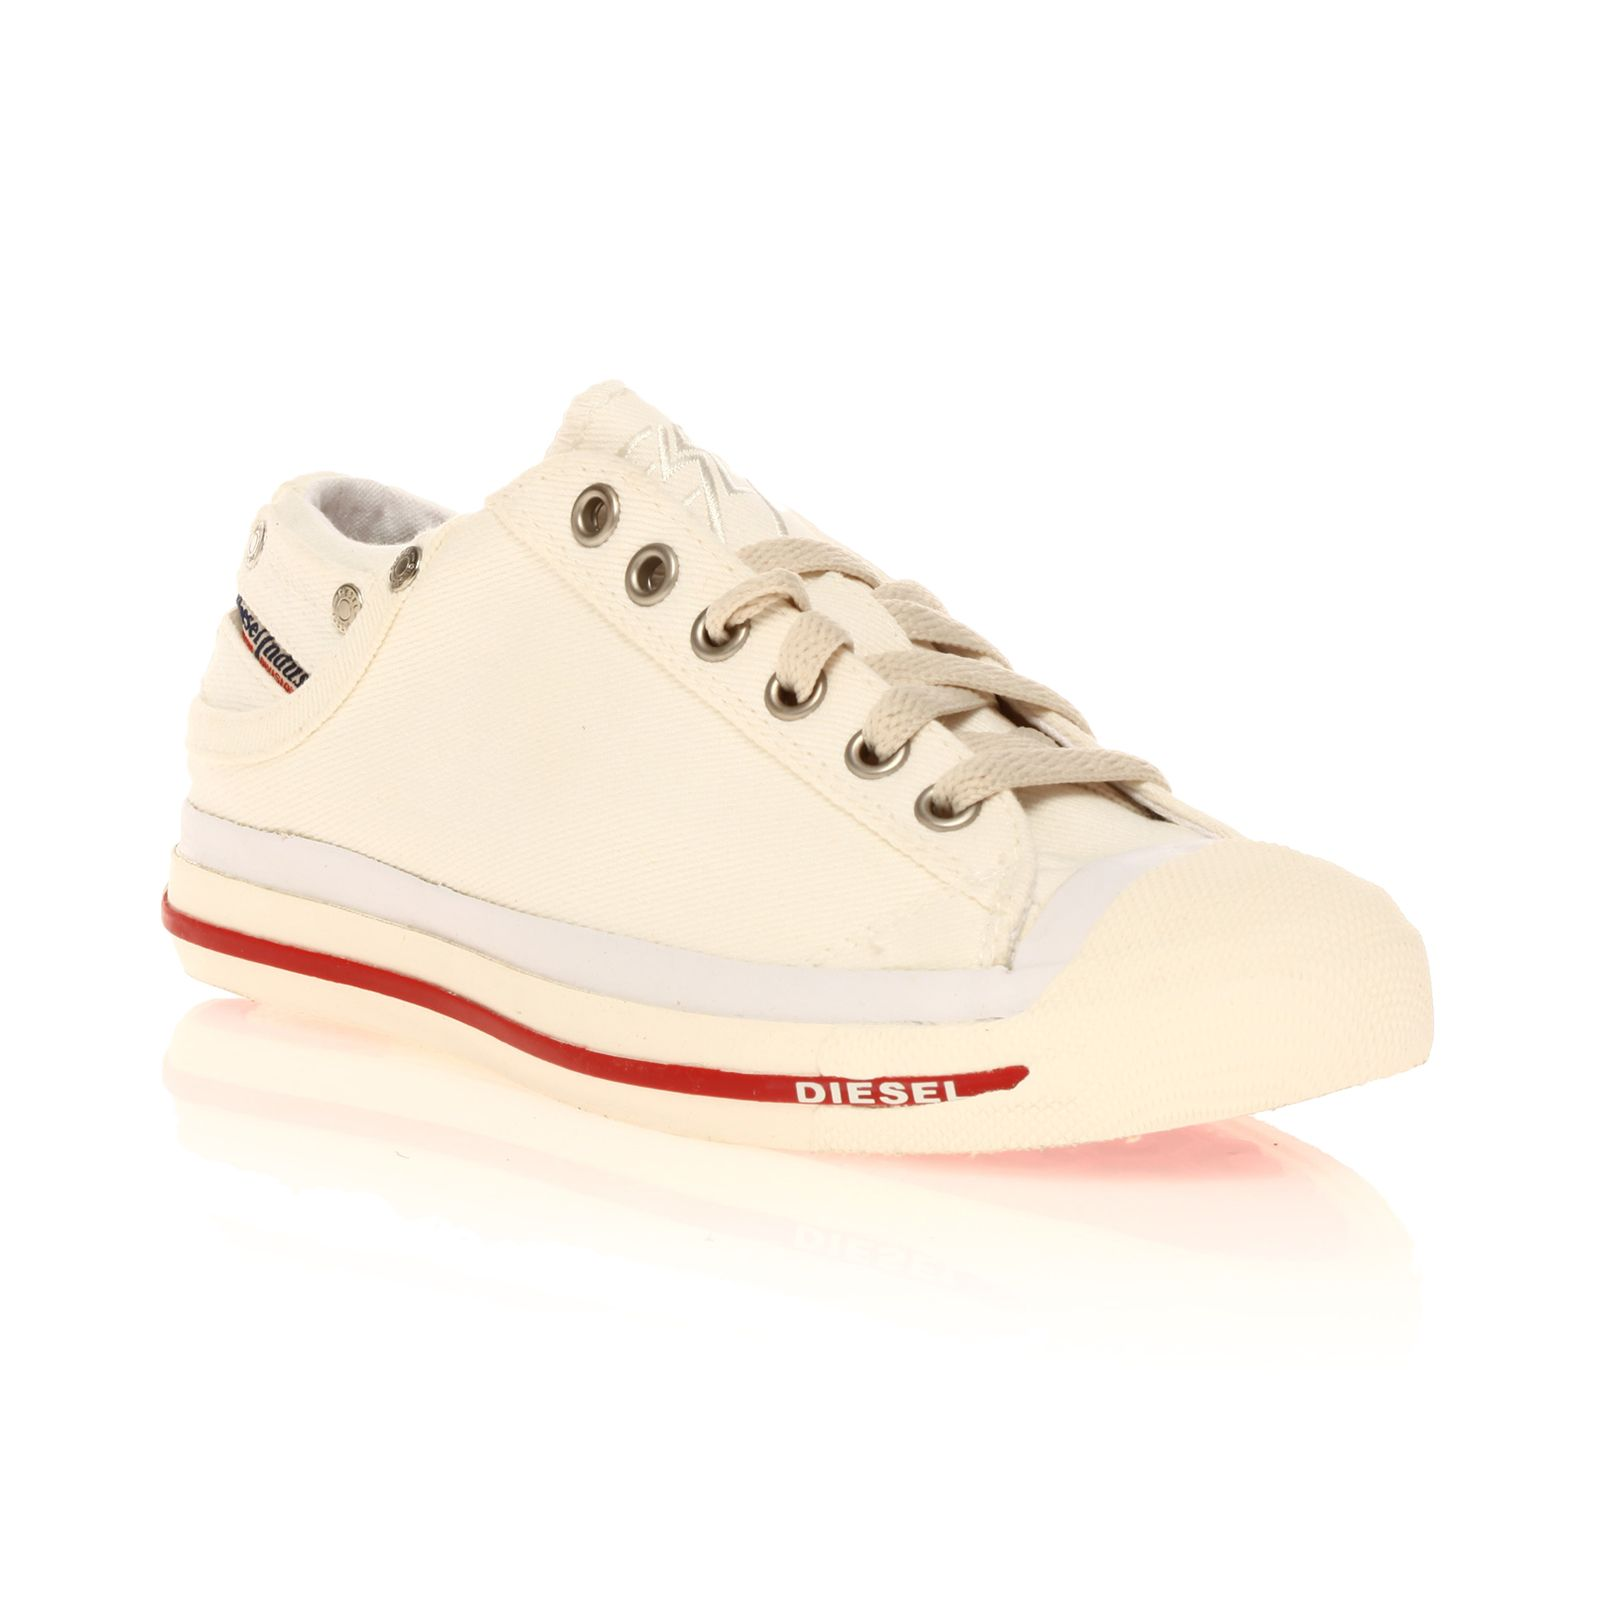 Diesel Magnete Exposure Low - Sneakers - blanches